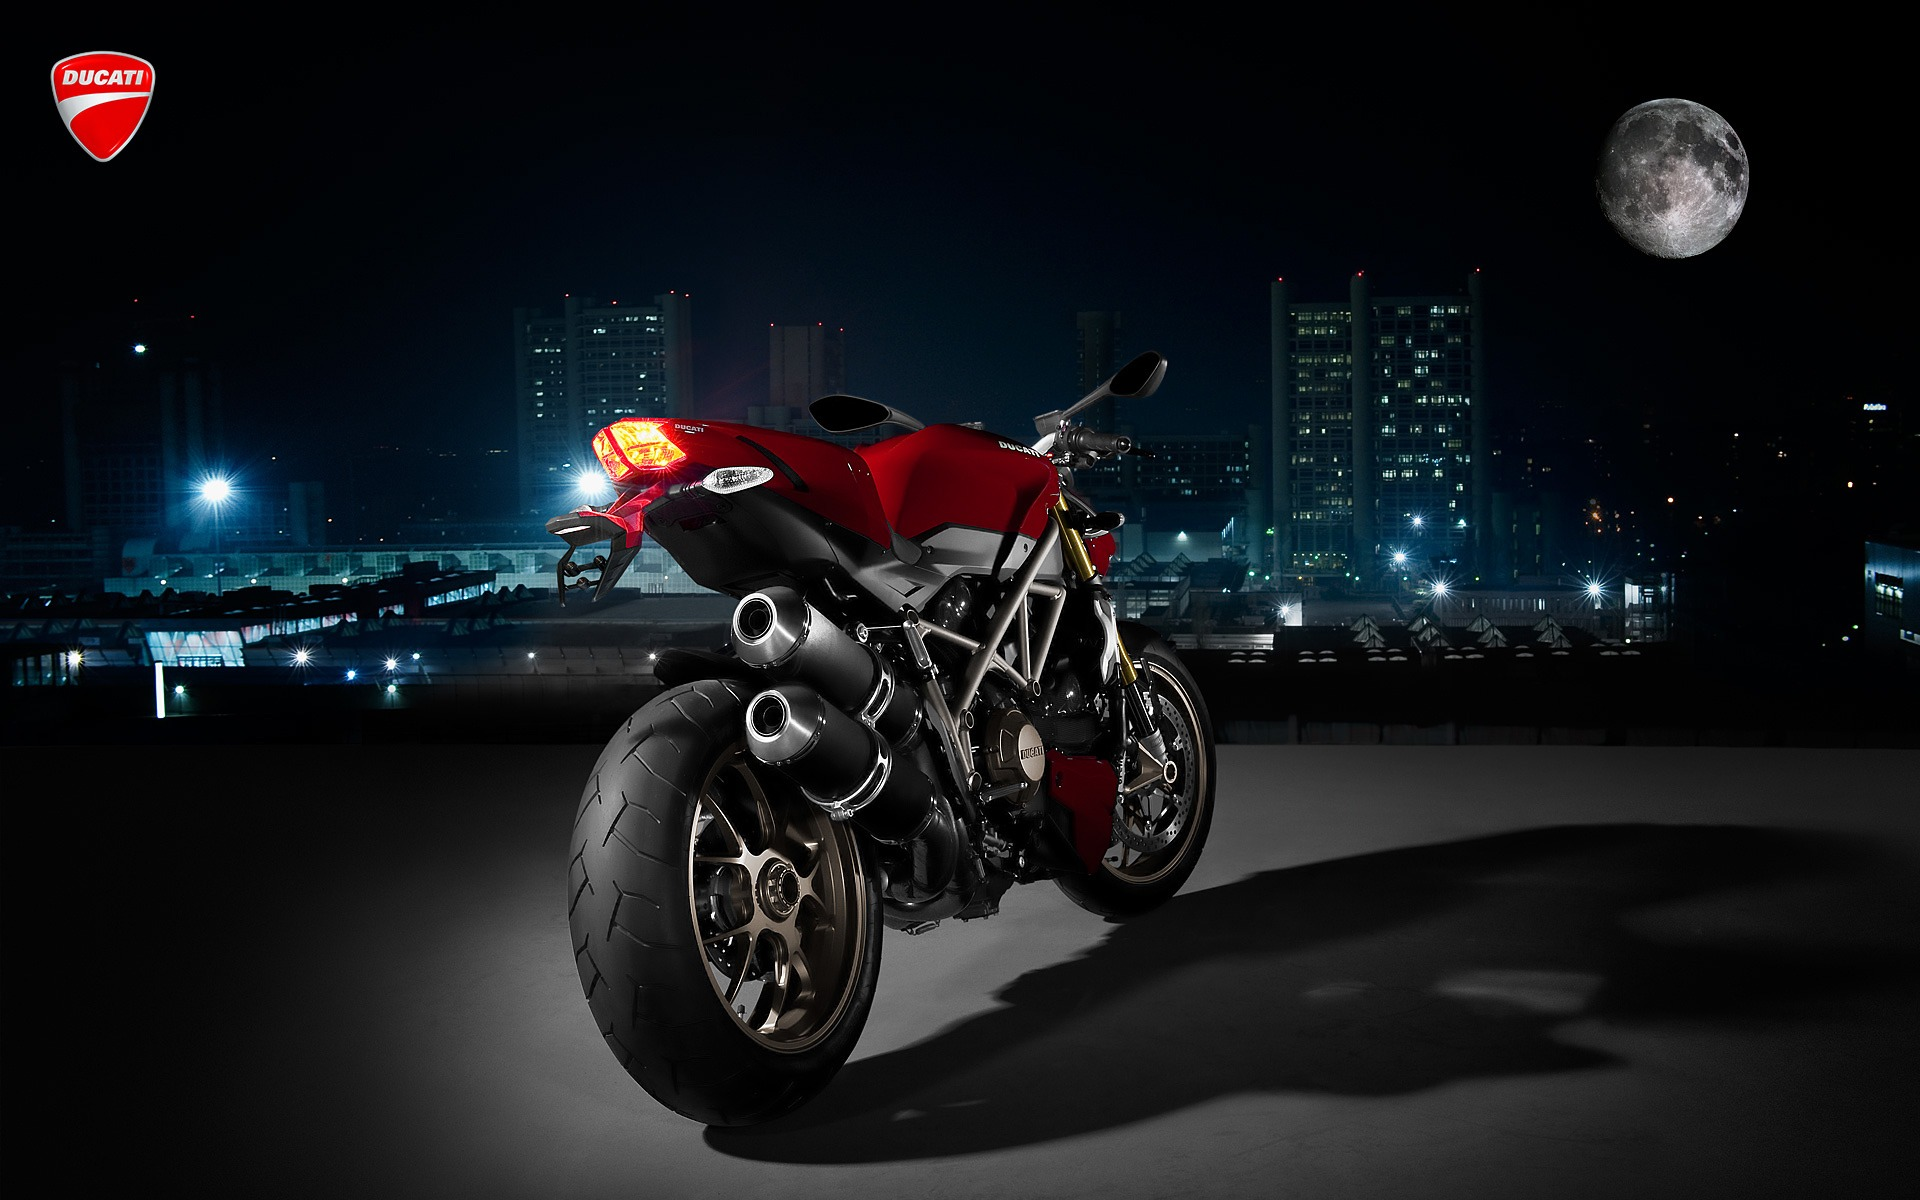 Street motor wallpaper collection 13 wallpapers collection of 13 street motor wallpaper voltagebd Choice Image